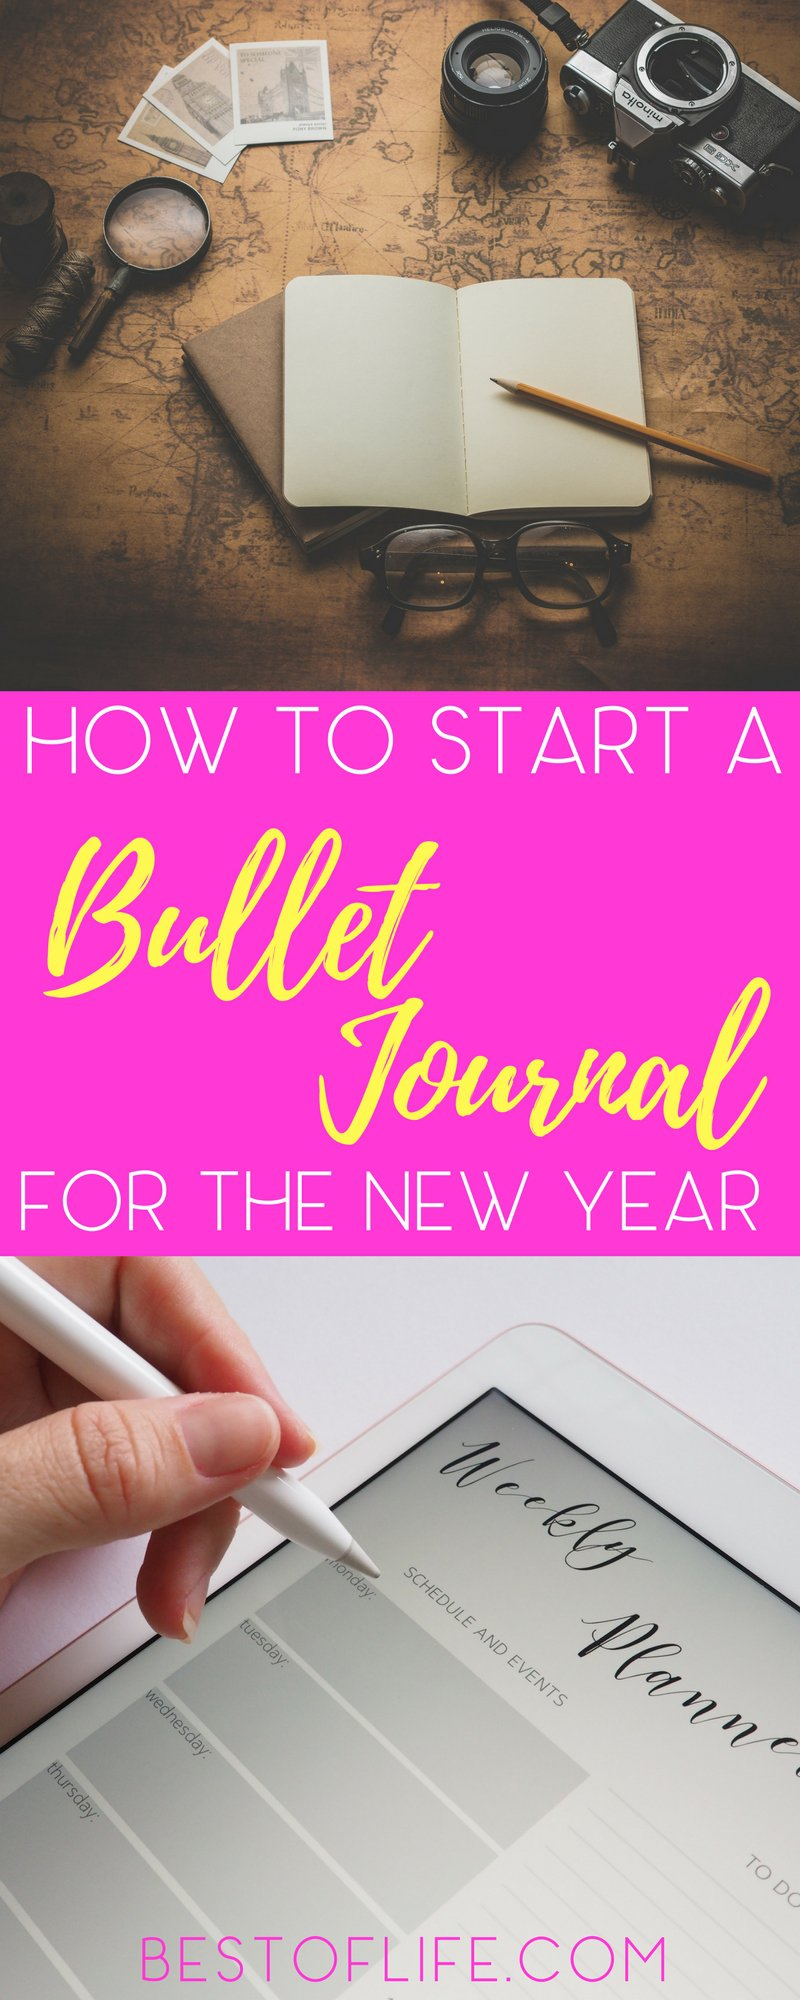 Having a bullet journal for the new year can help us stay organized so we can reach our goals and New Year's resolutions. Bullet Journal Ideas | Bullet Journal Tips | Best Bullet Journal Ideas | New Years Resolution | Planner Tips | BuJo for the New Year | BuJo Tips